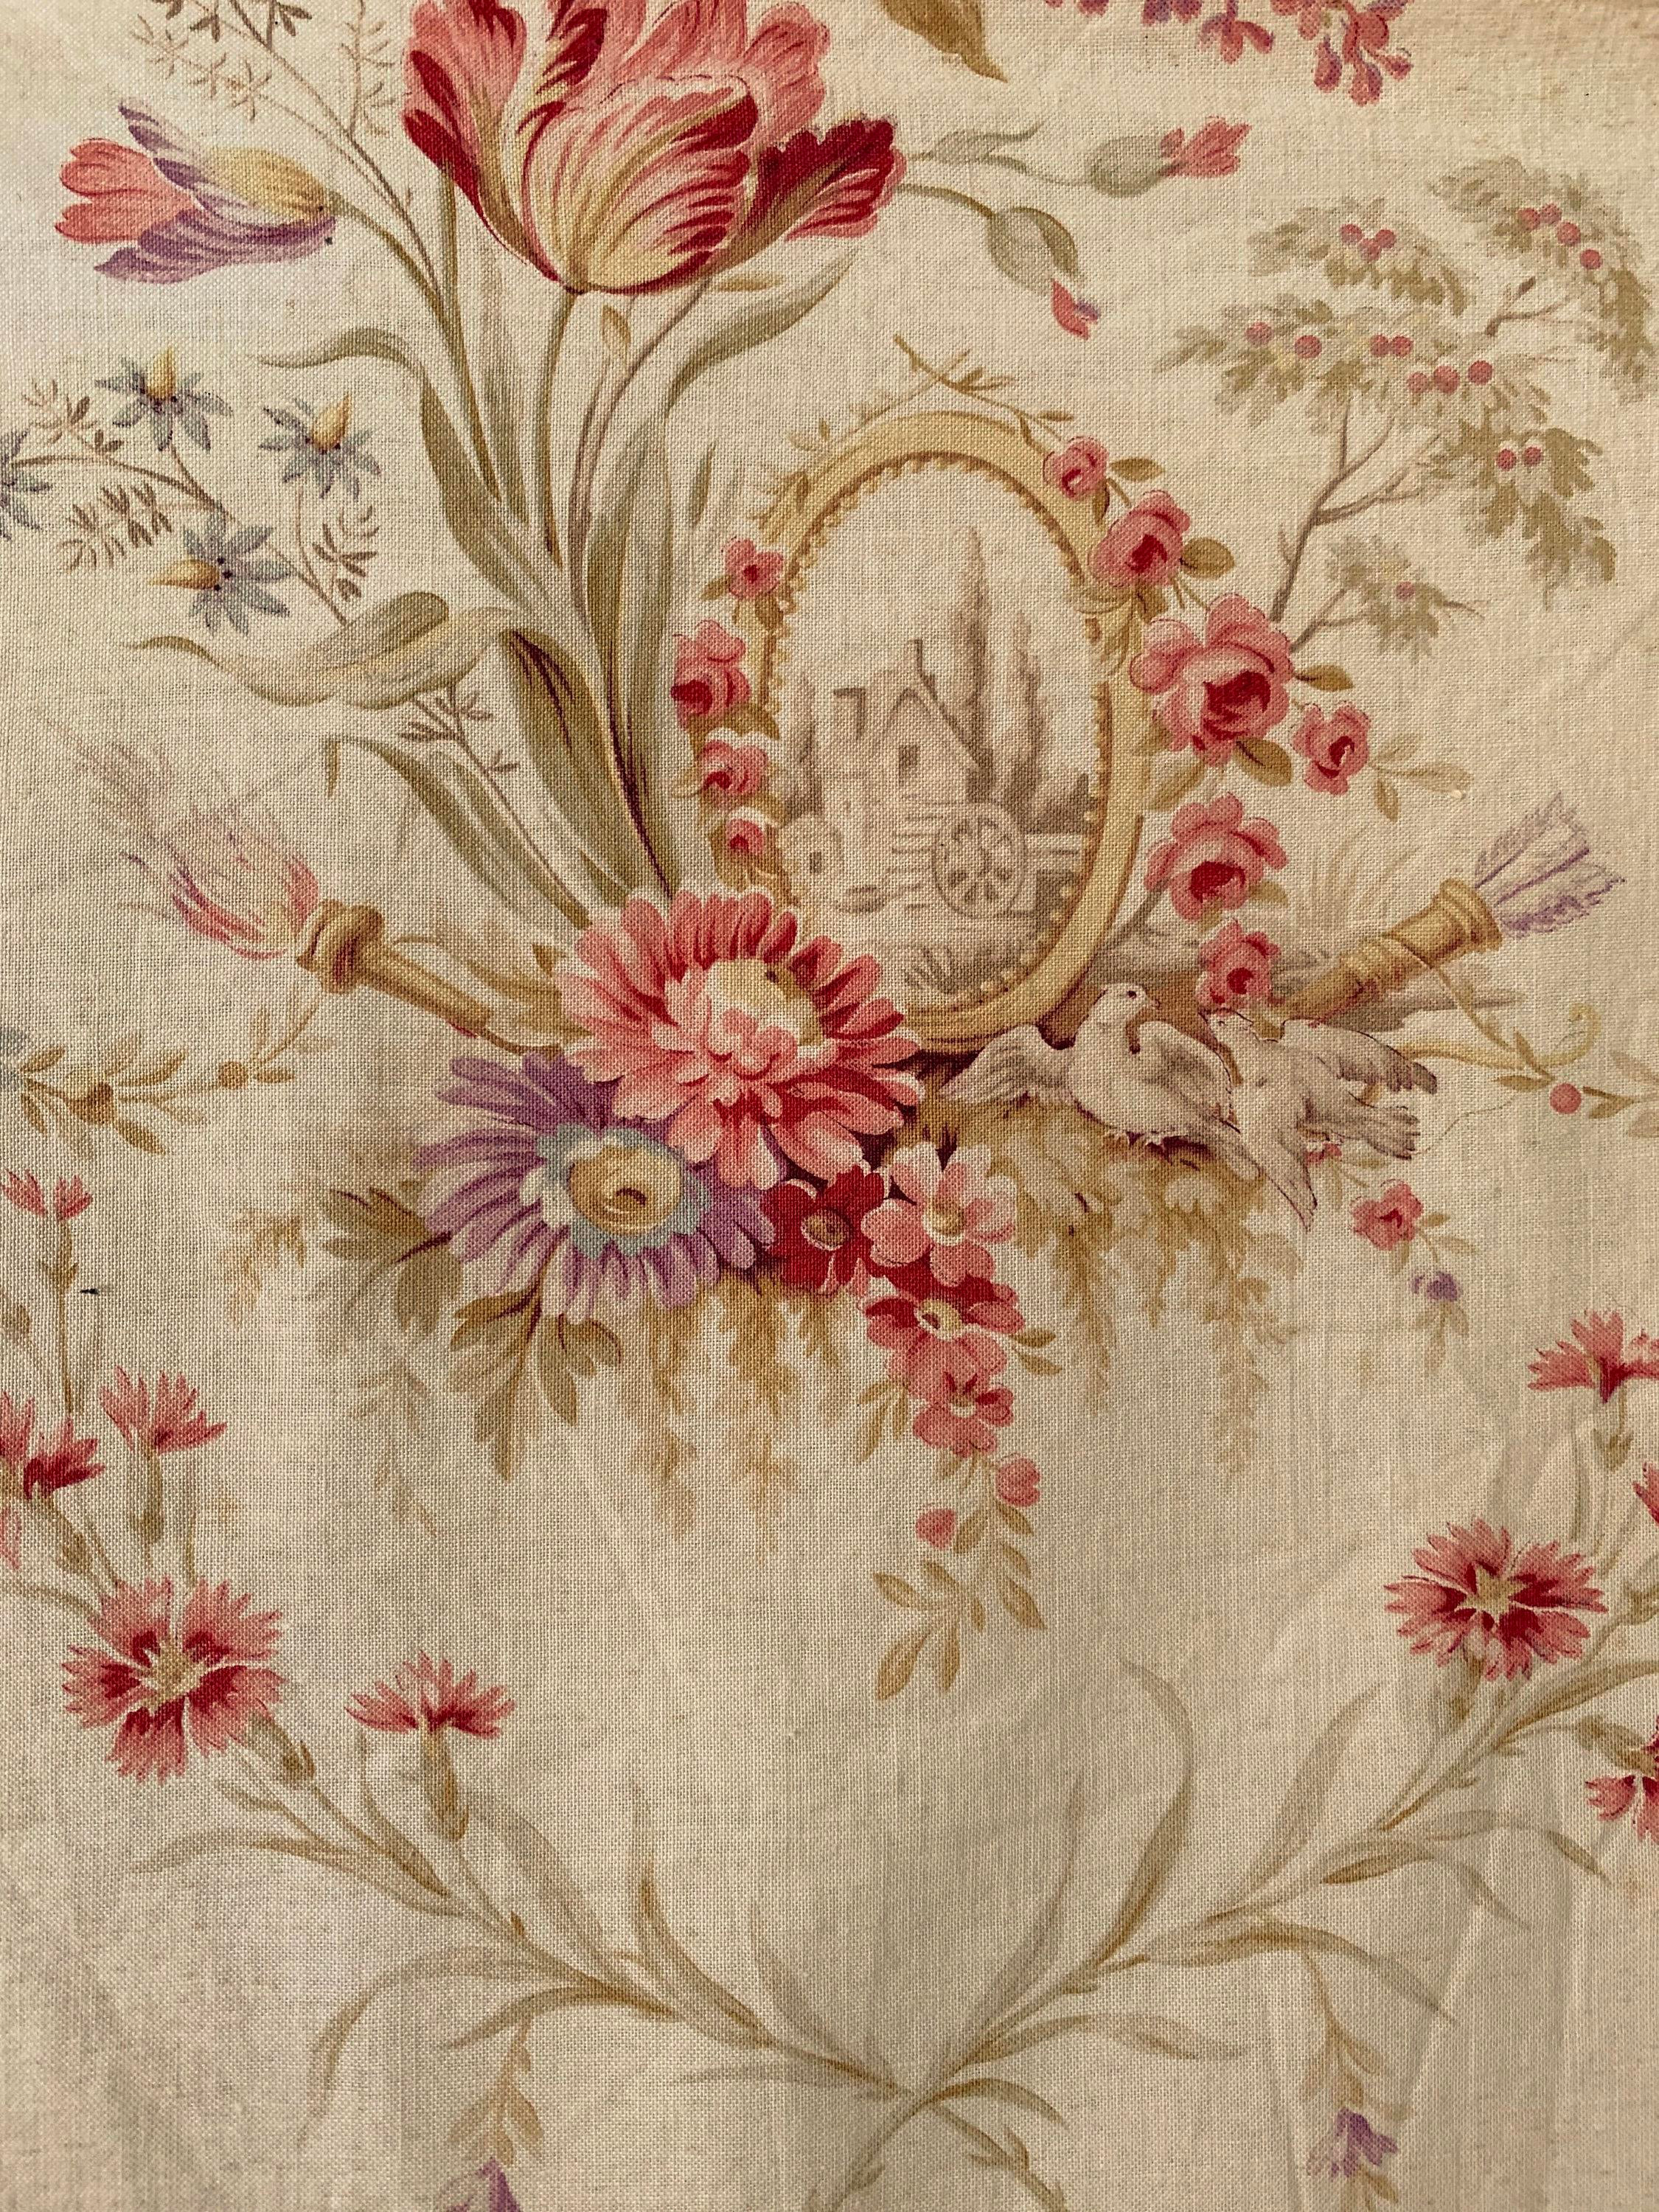 Gorgeous French fabric piece.